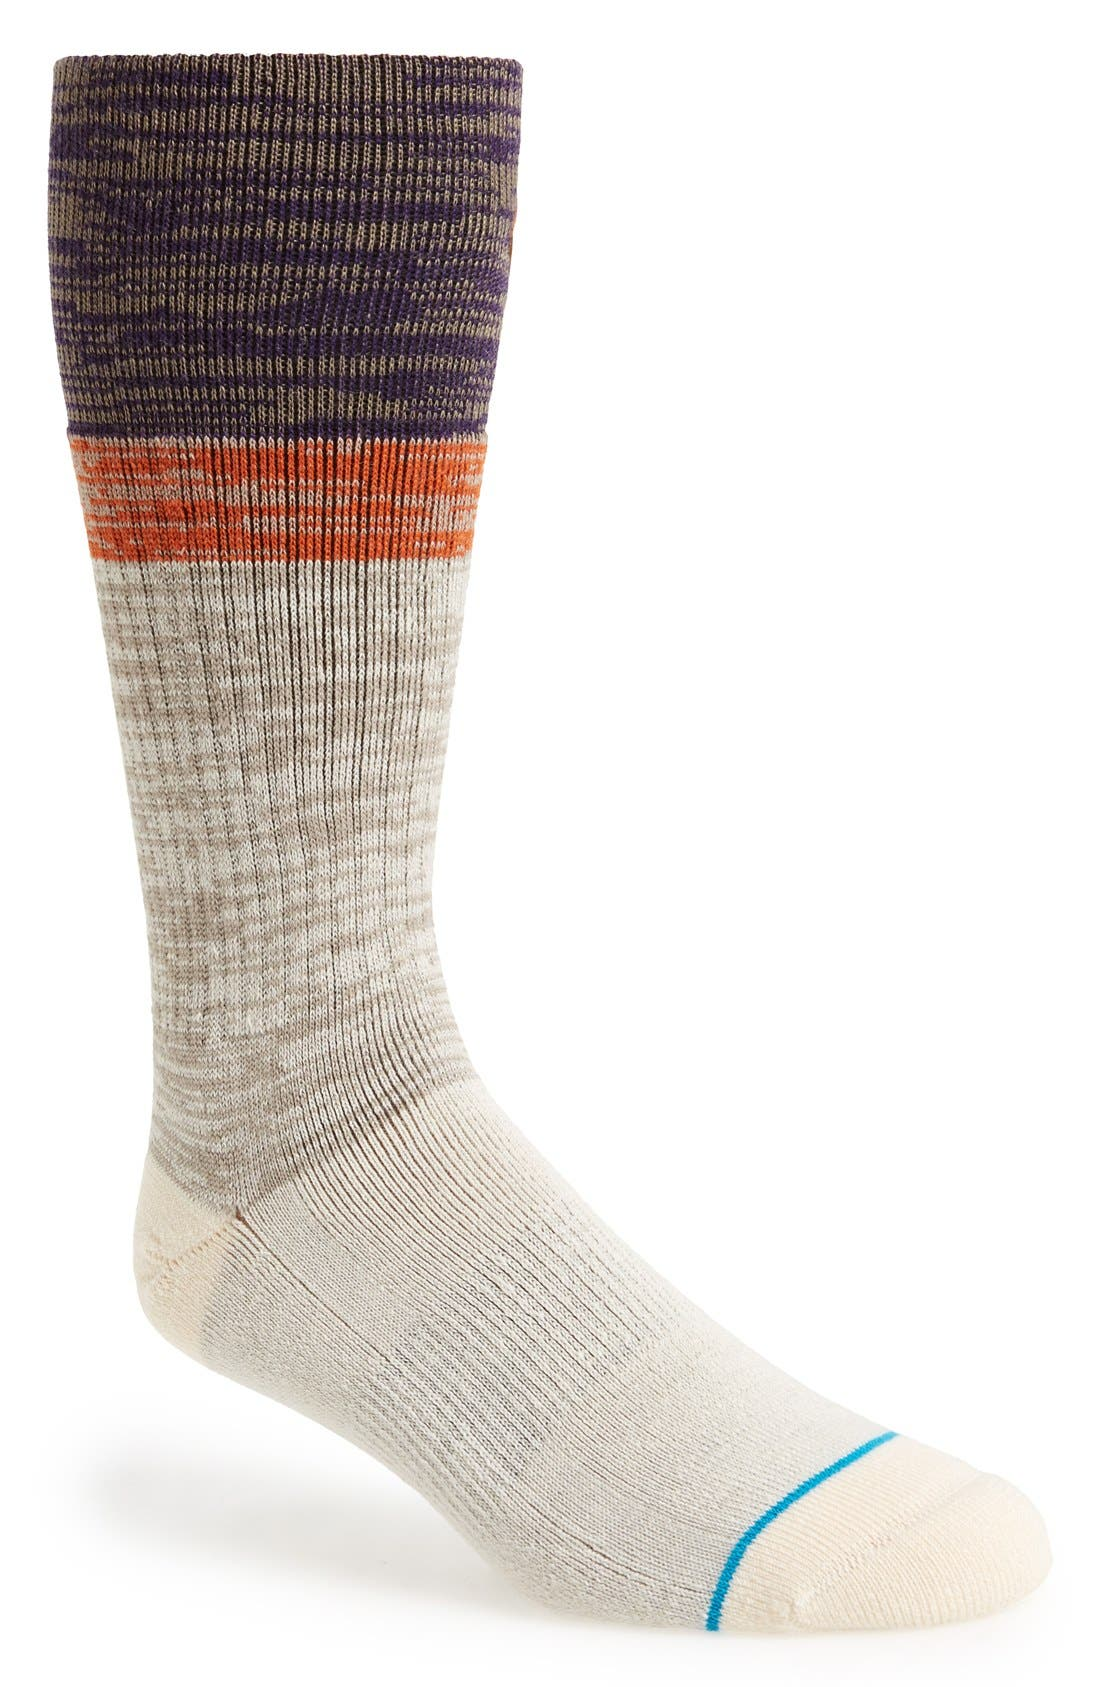 Main Image - Stance 'The Reserve - Scout' Socks